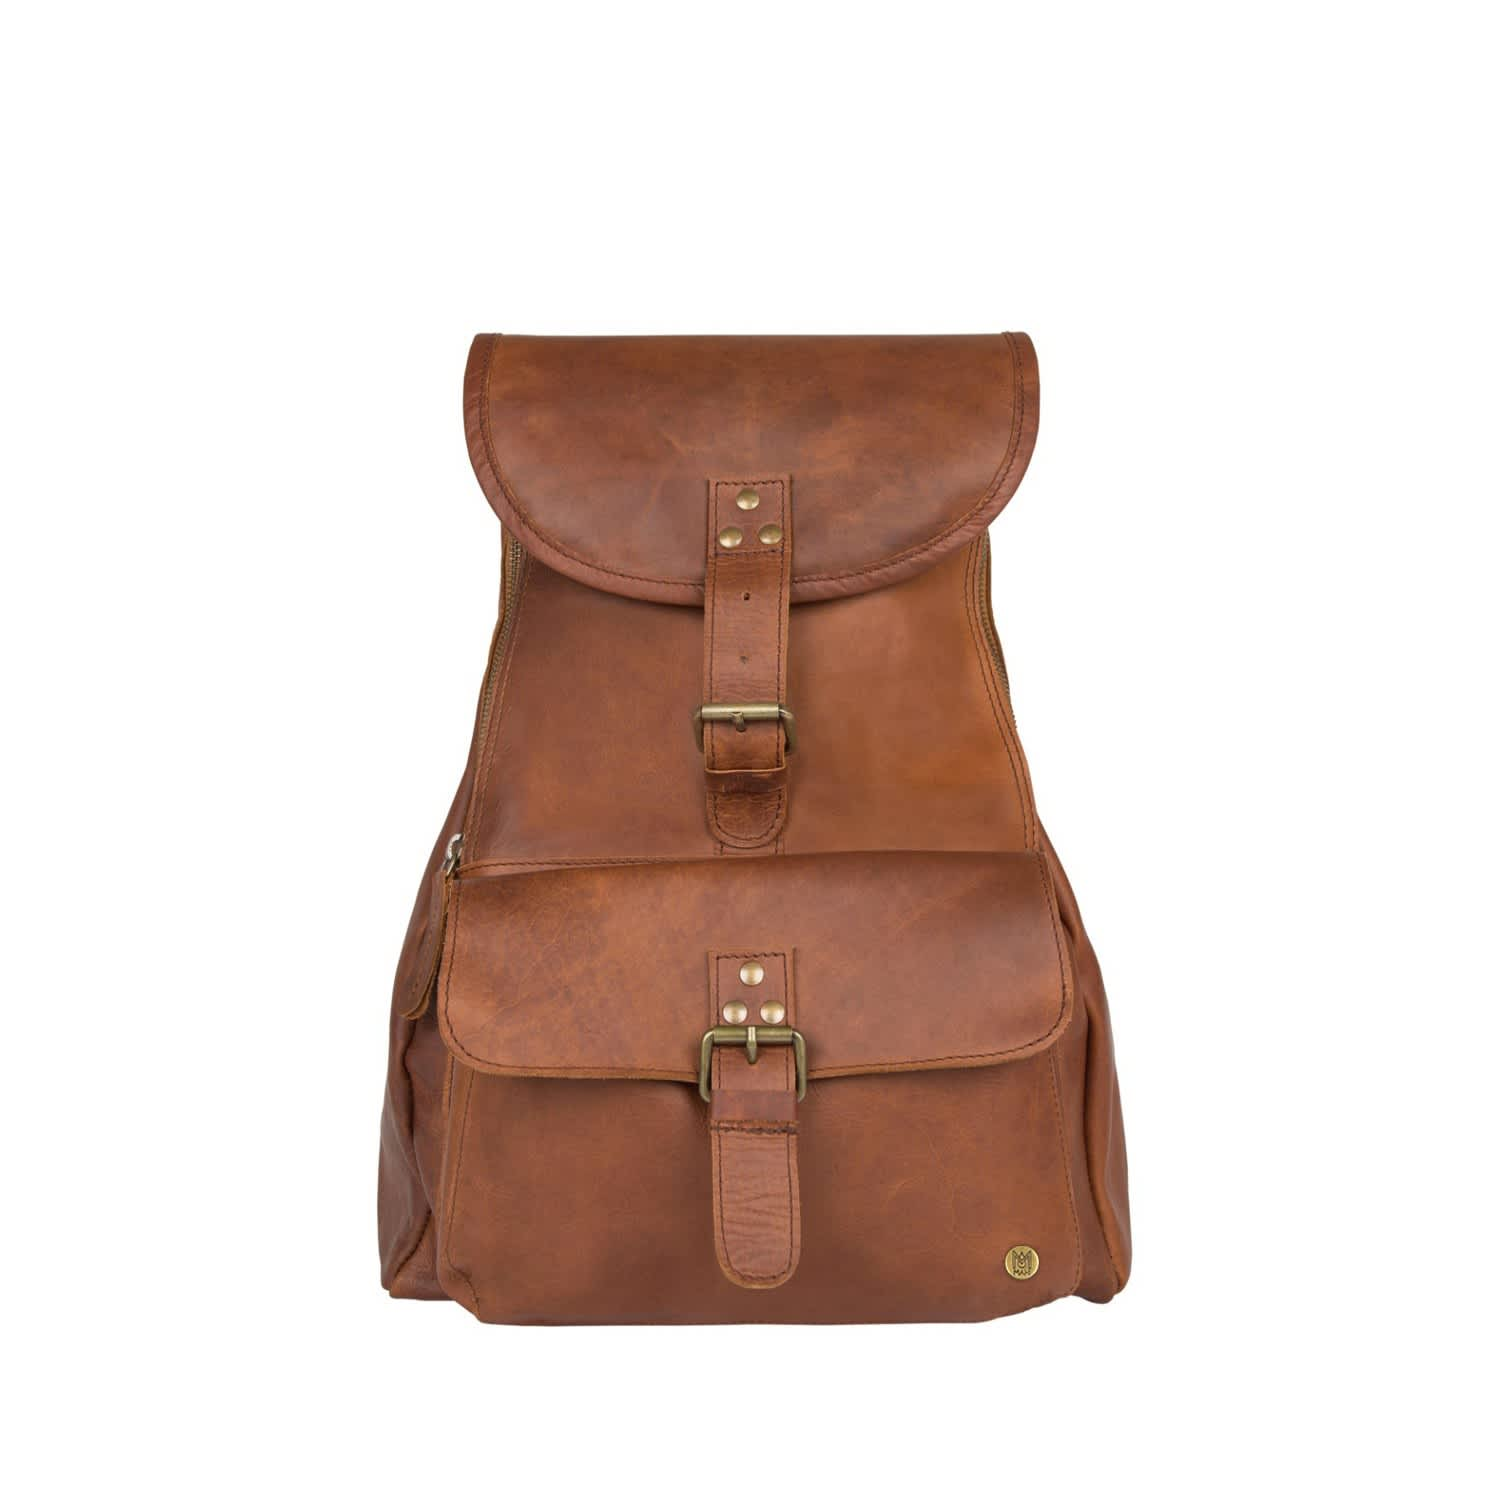 1a9c1931fc4 Leather Explorer Backpack/Rucksack Womens In Vintage Brown by MAHI Leather